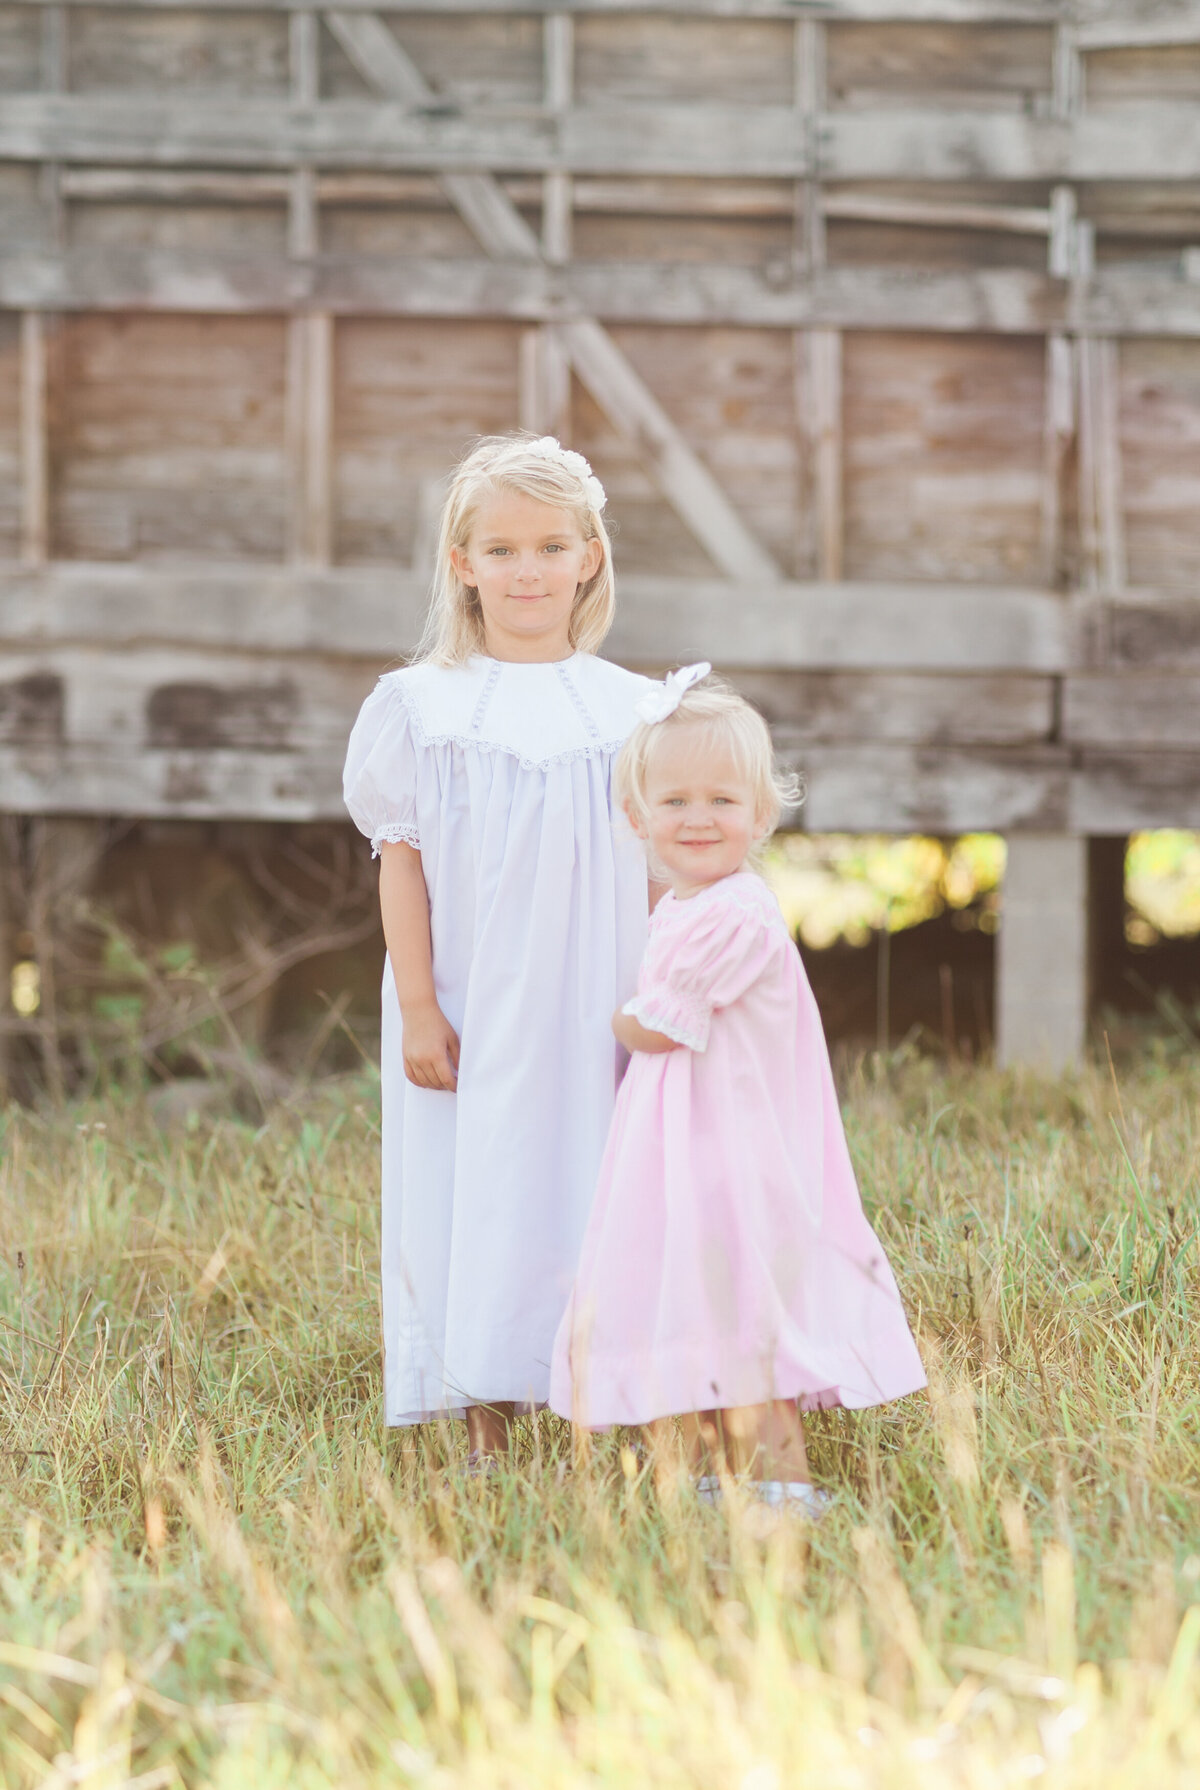 children-child-hampton-roads-photographer-virginia-beach-tonya-volk-photography-6